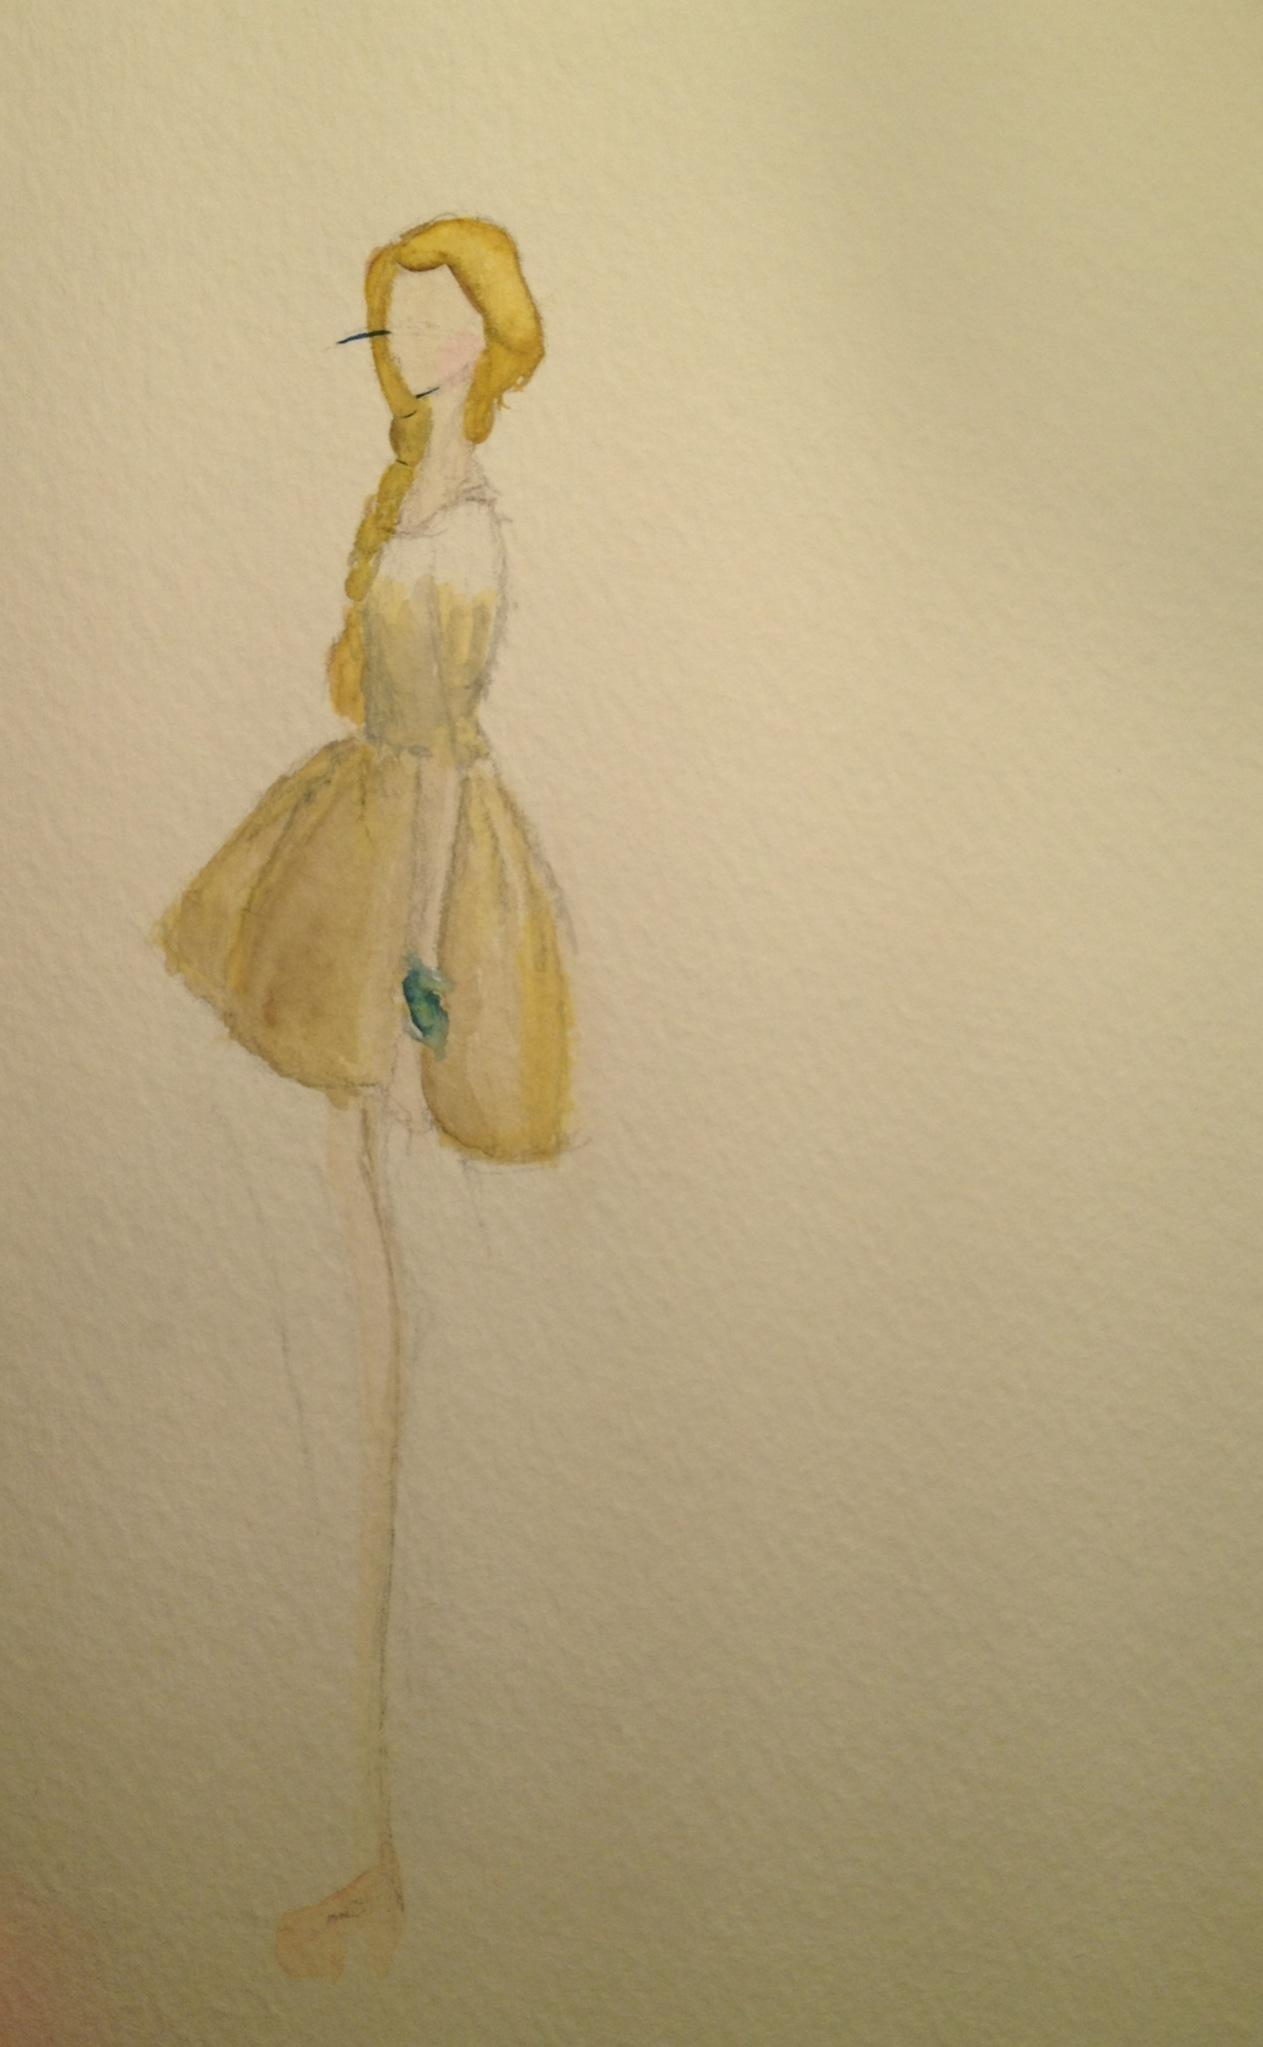 Watercolor. Diamond - image 2 - student project